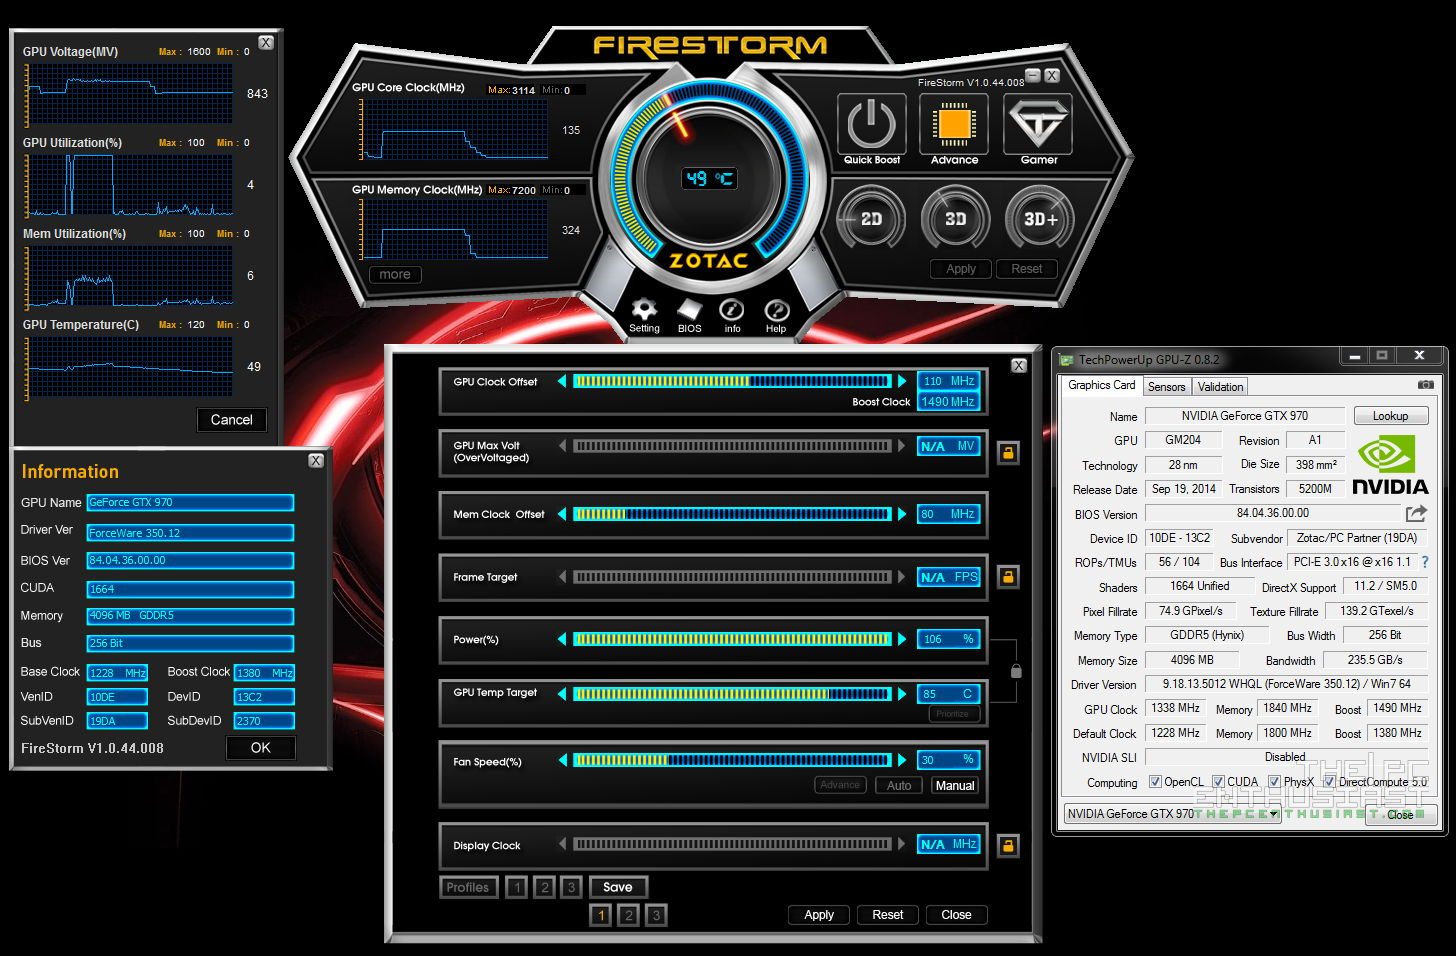 Zotac GeForce GTX 970 AMP! Extreme Core Edition Review - The Faster